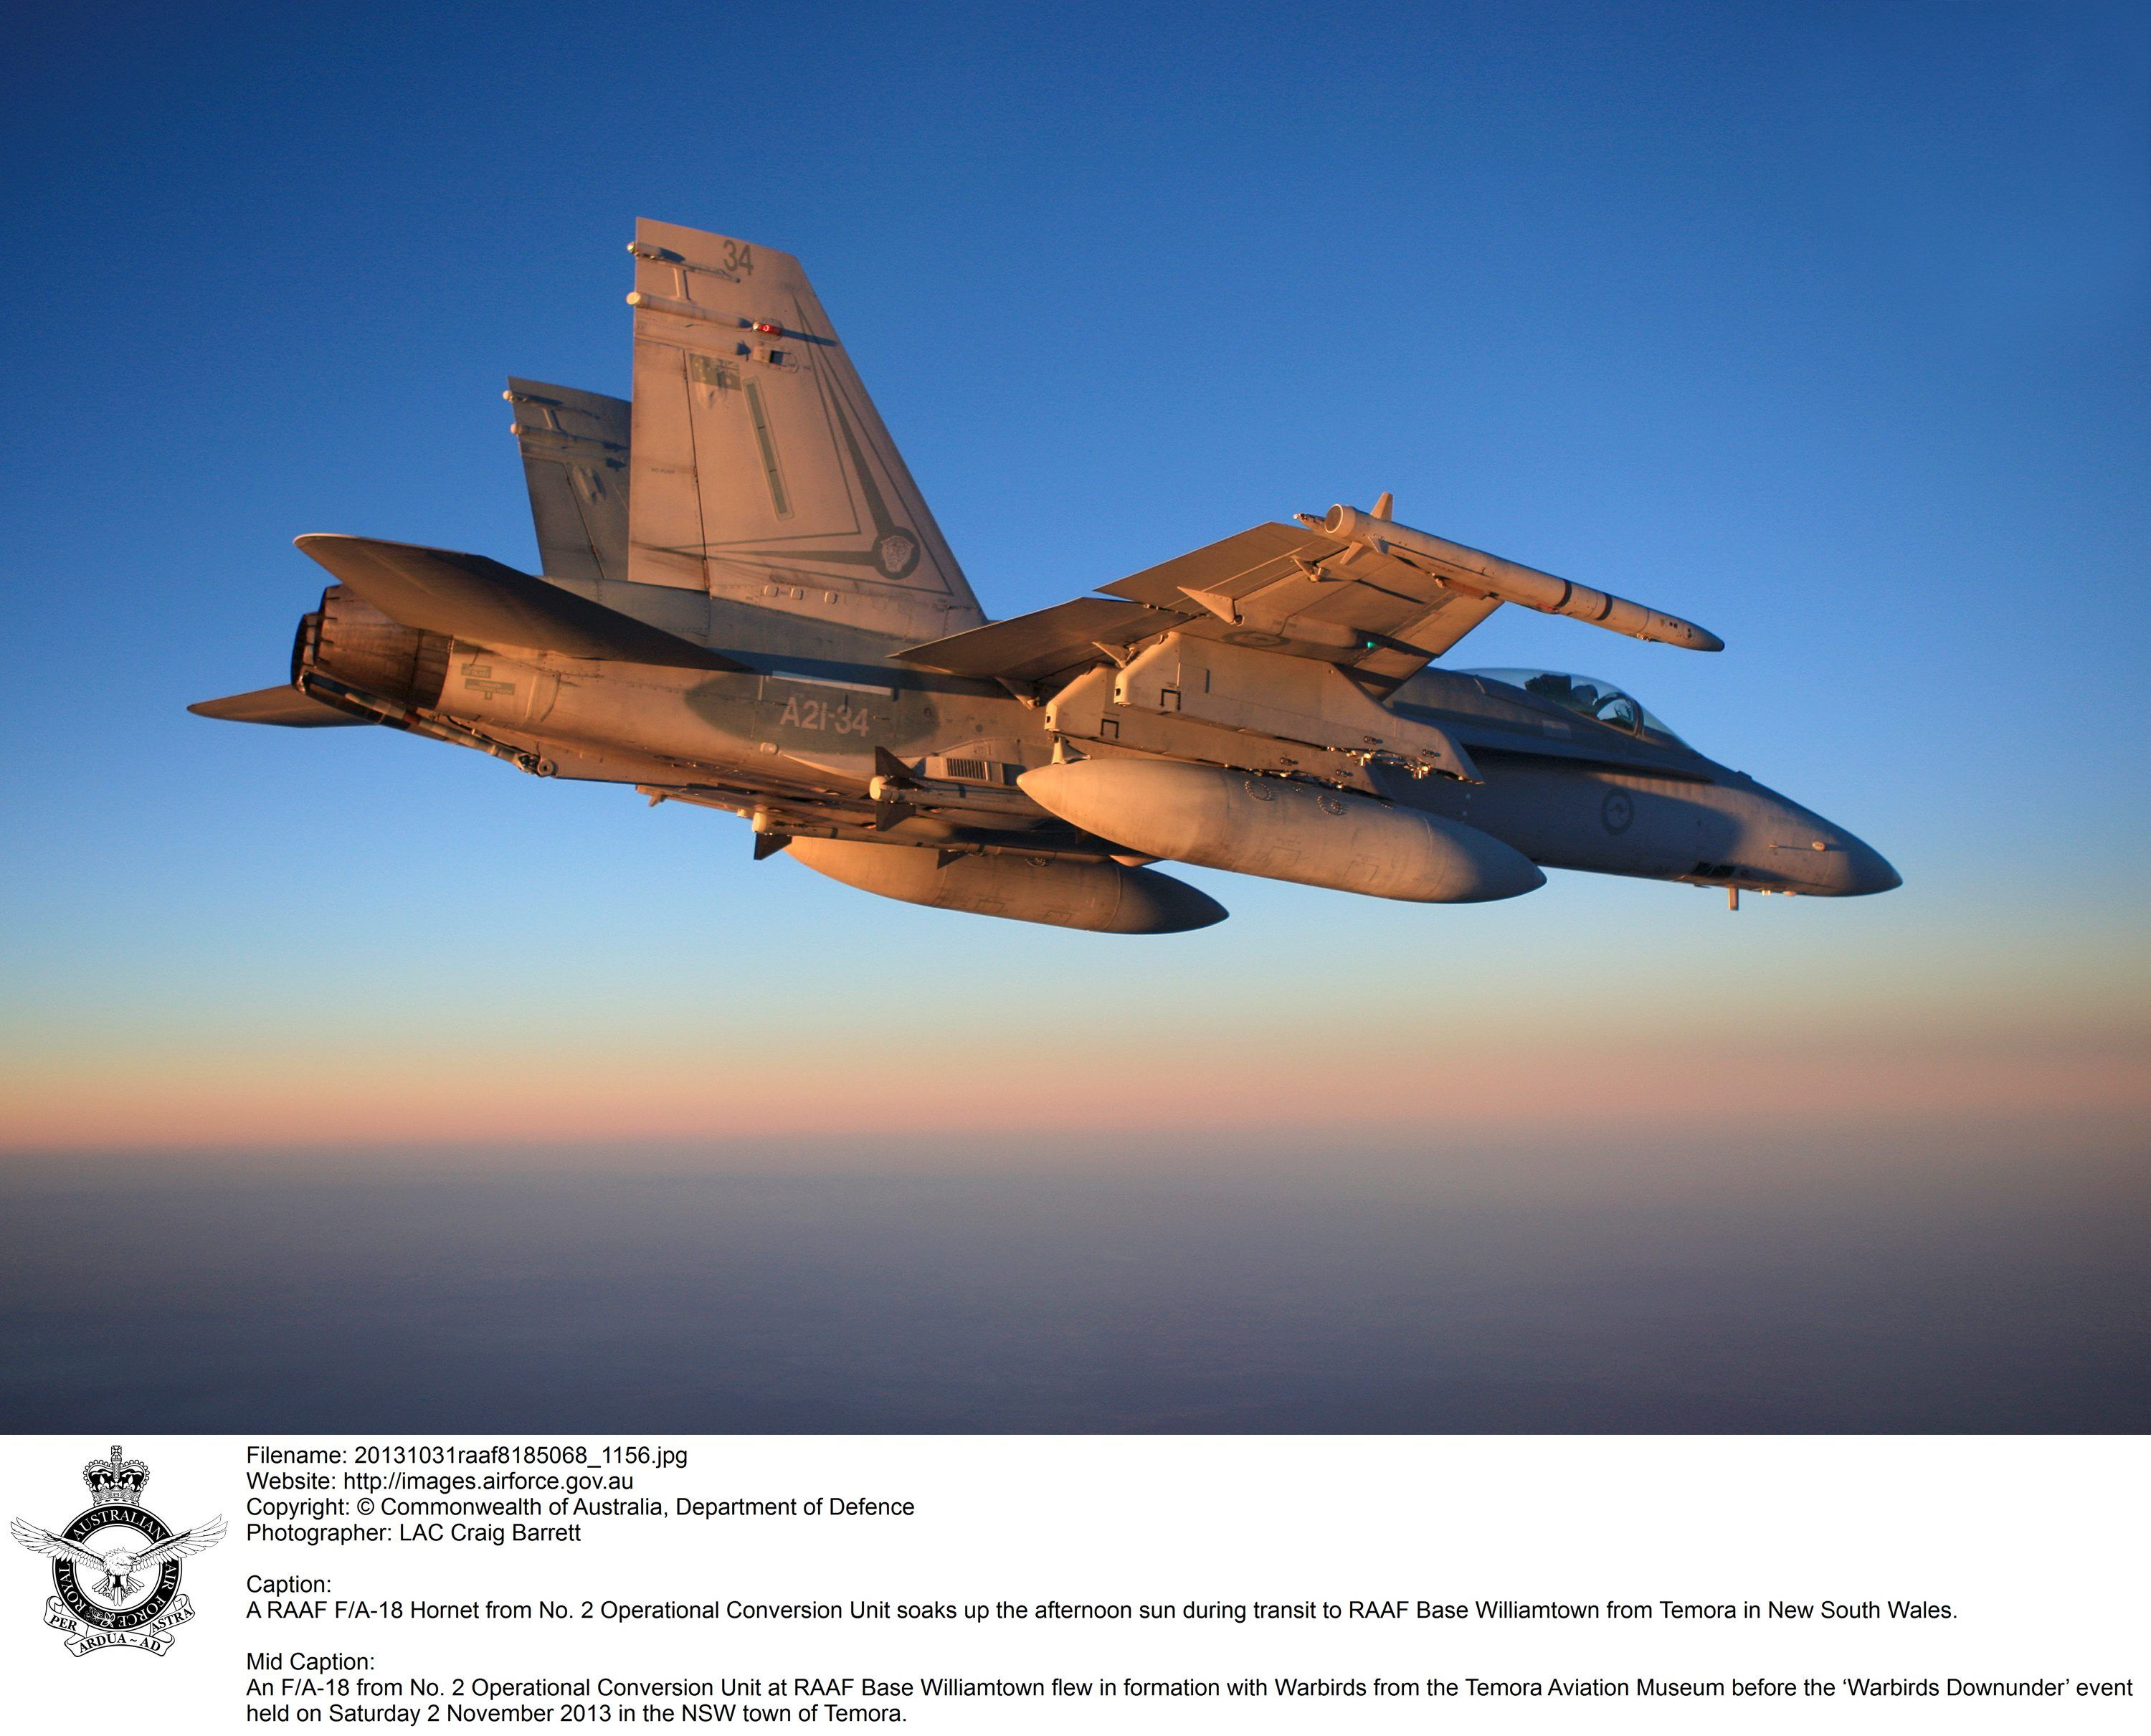 A RAAF F/A-18 Hornet from No. 2 Operational Conversion Unit soaks up the afternoon sun during transit to RAAF Base Williamtown from Temora in New South Wales.